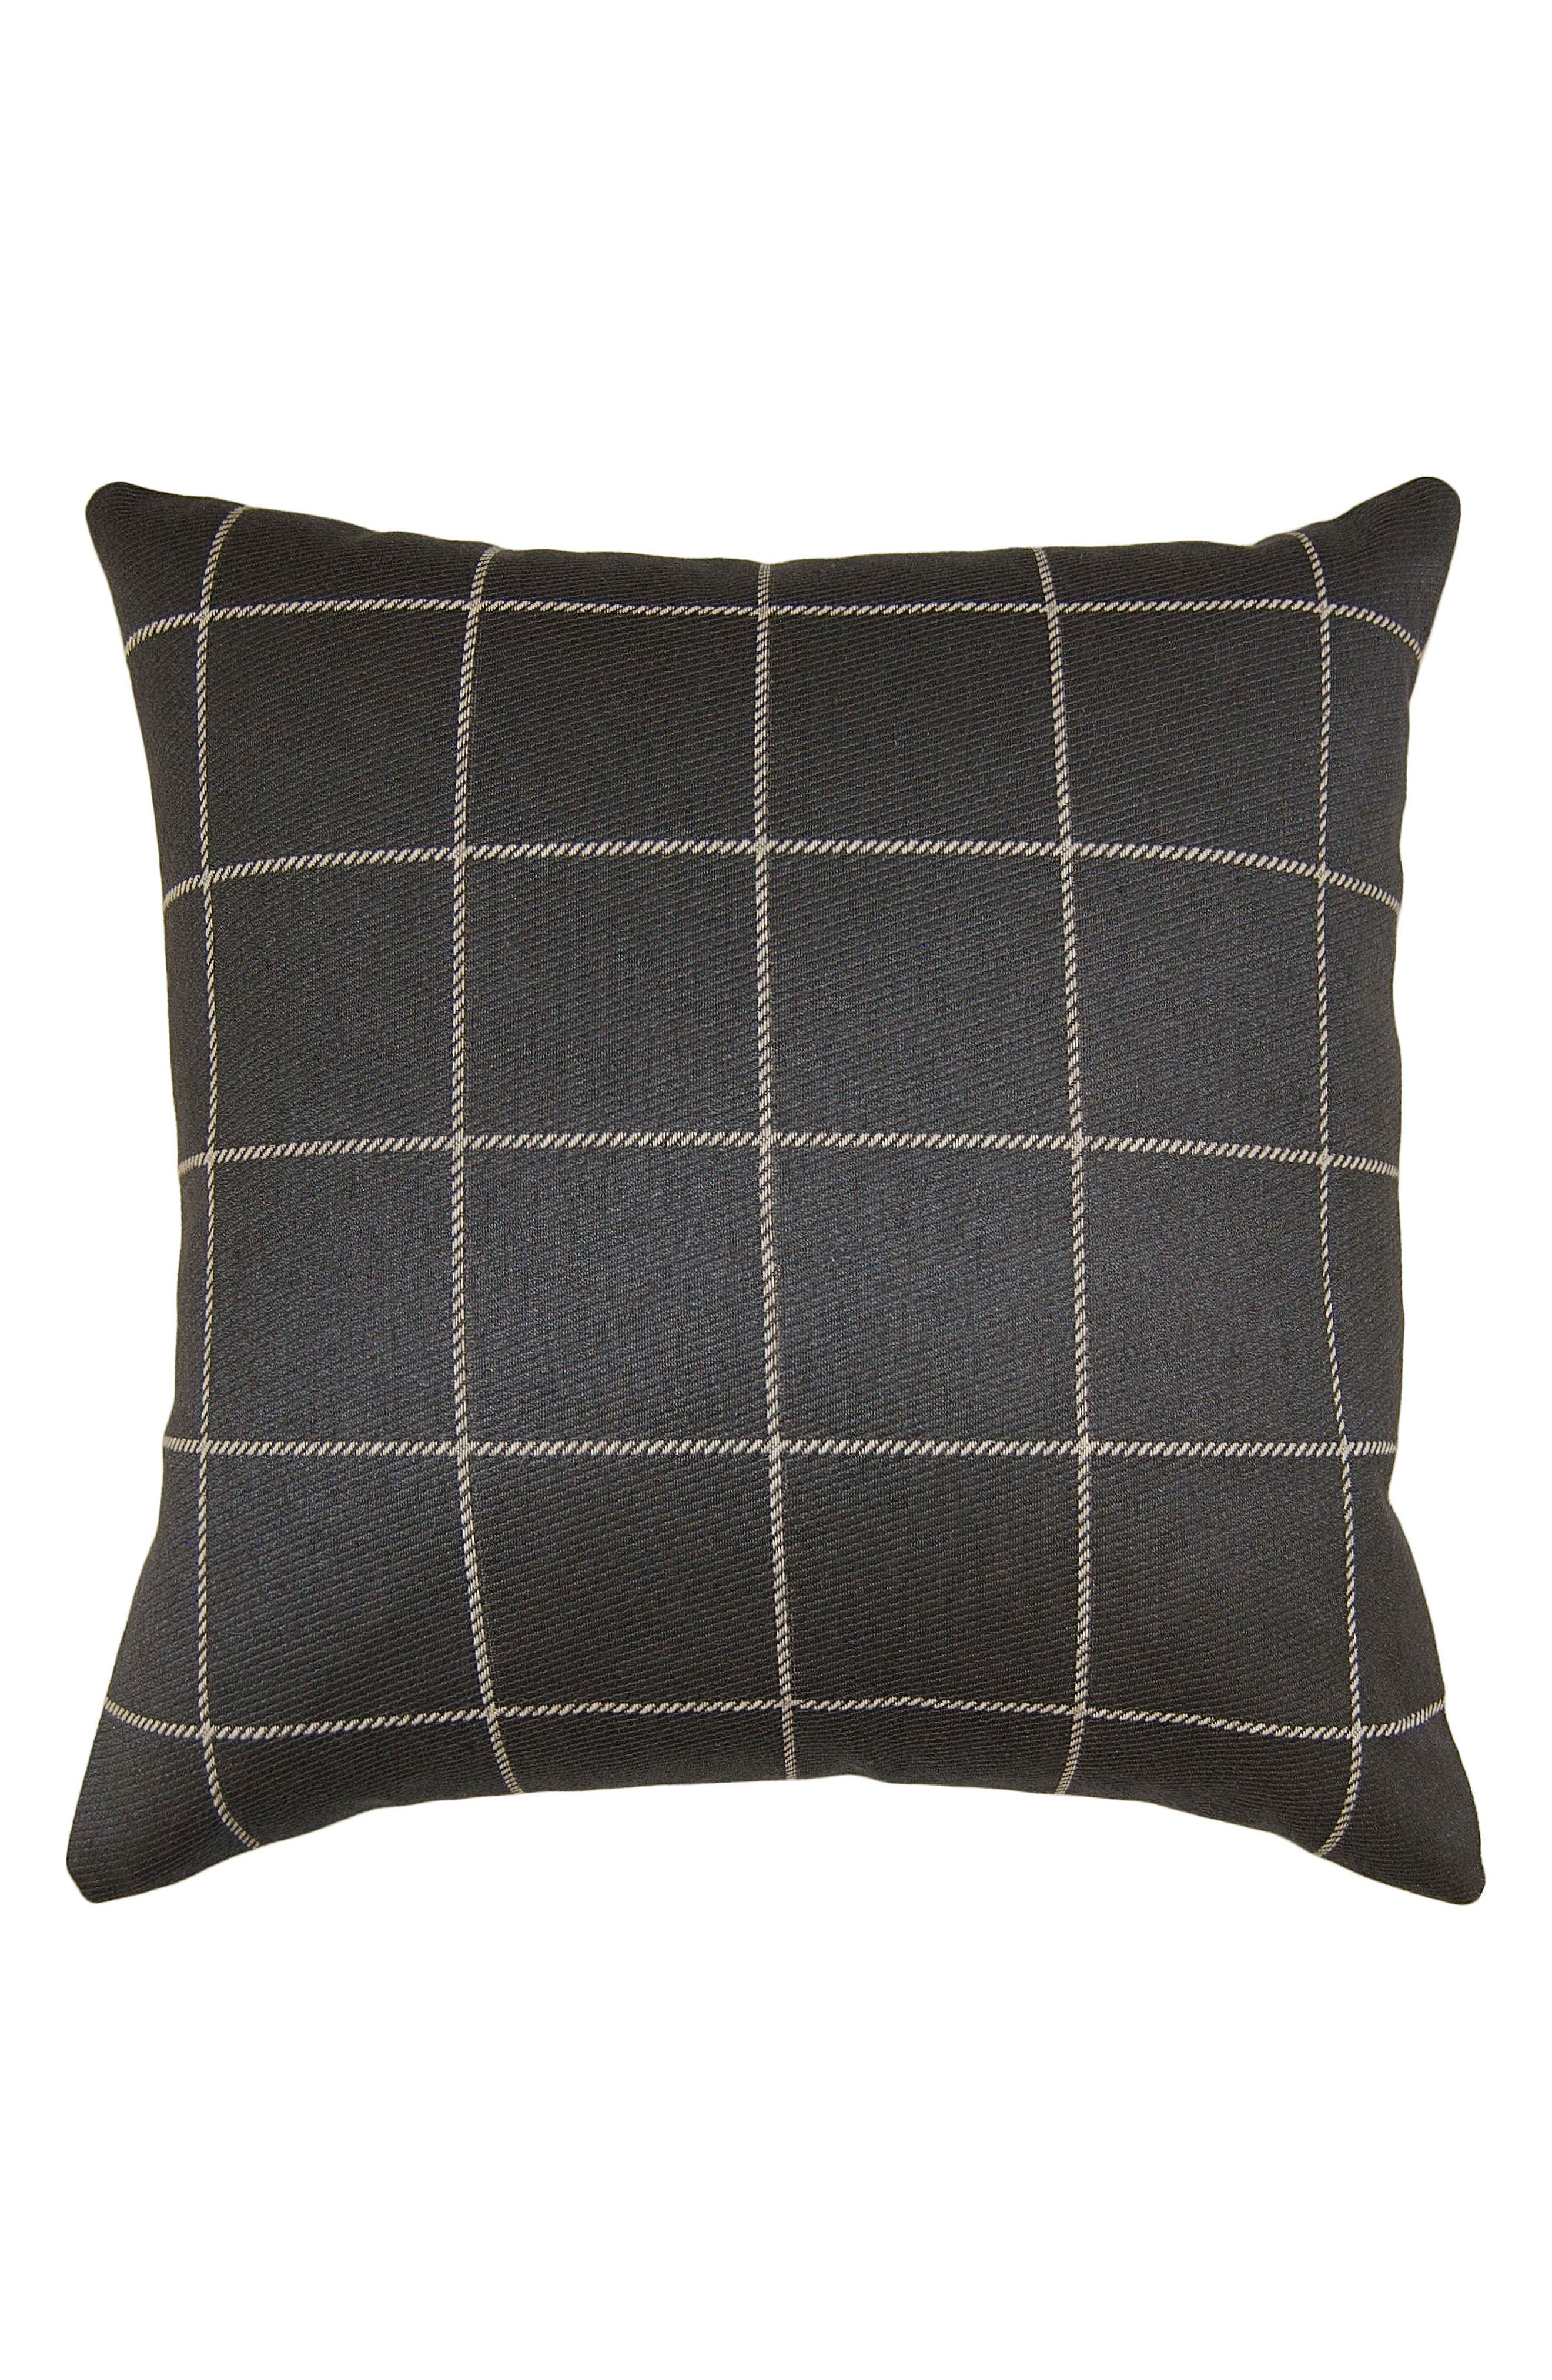 Kowloon Accent Pillow,                         Main,                         color, Grey